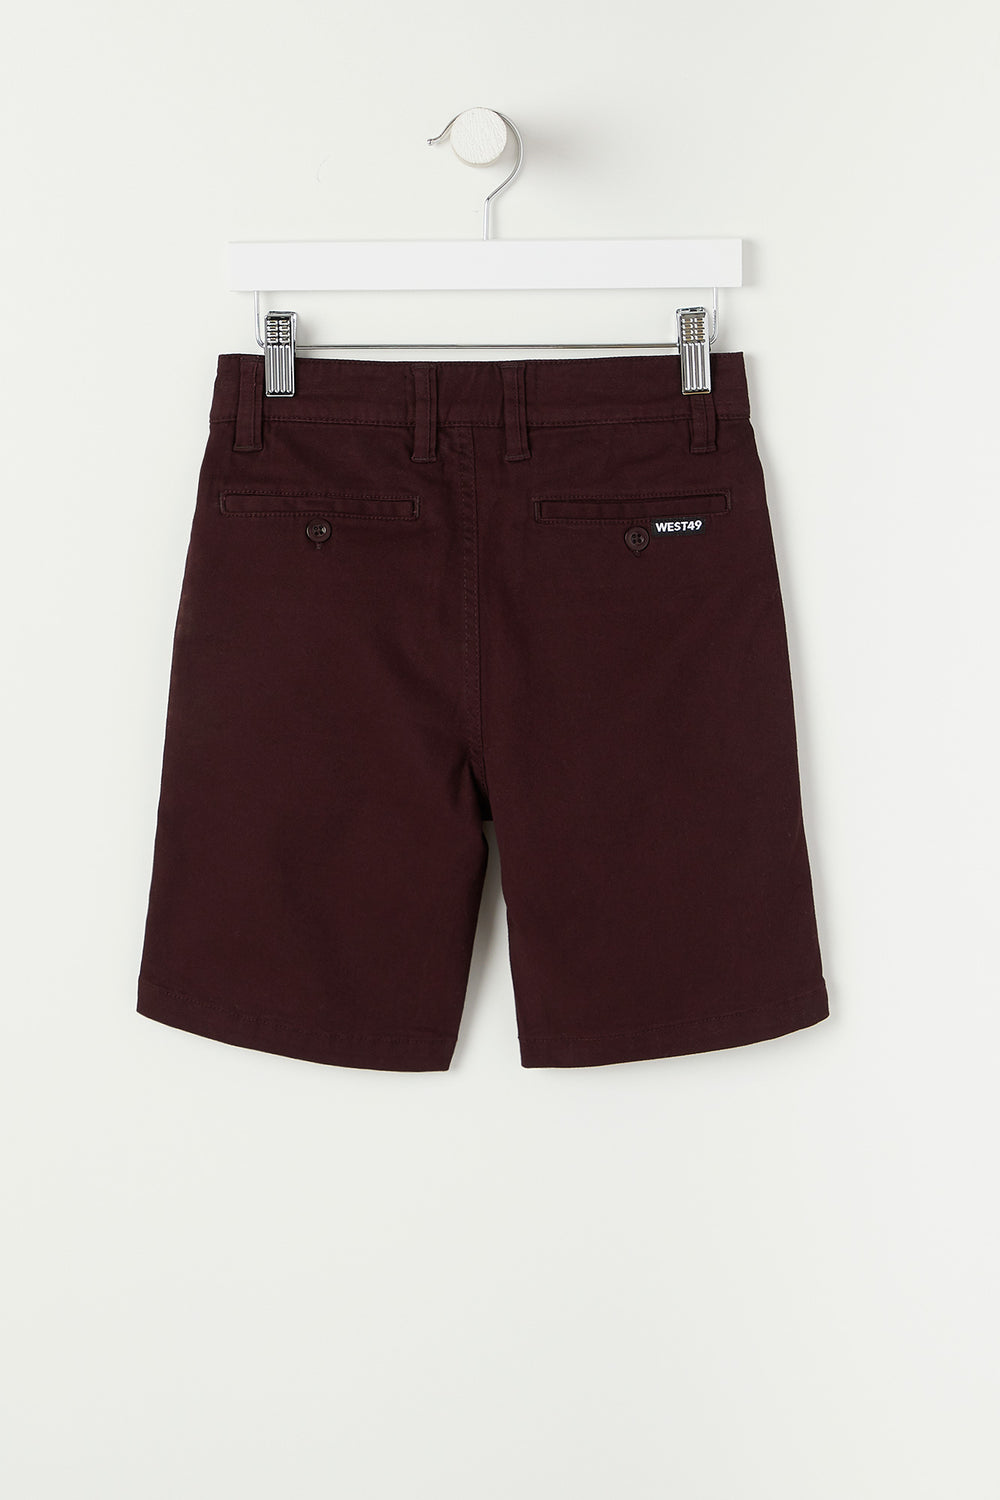 West49 Youth Twill Street Short Burgundy